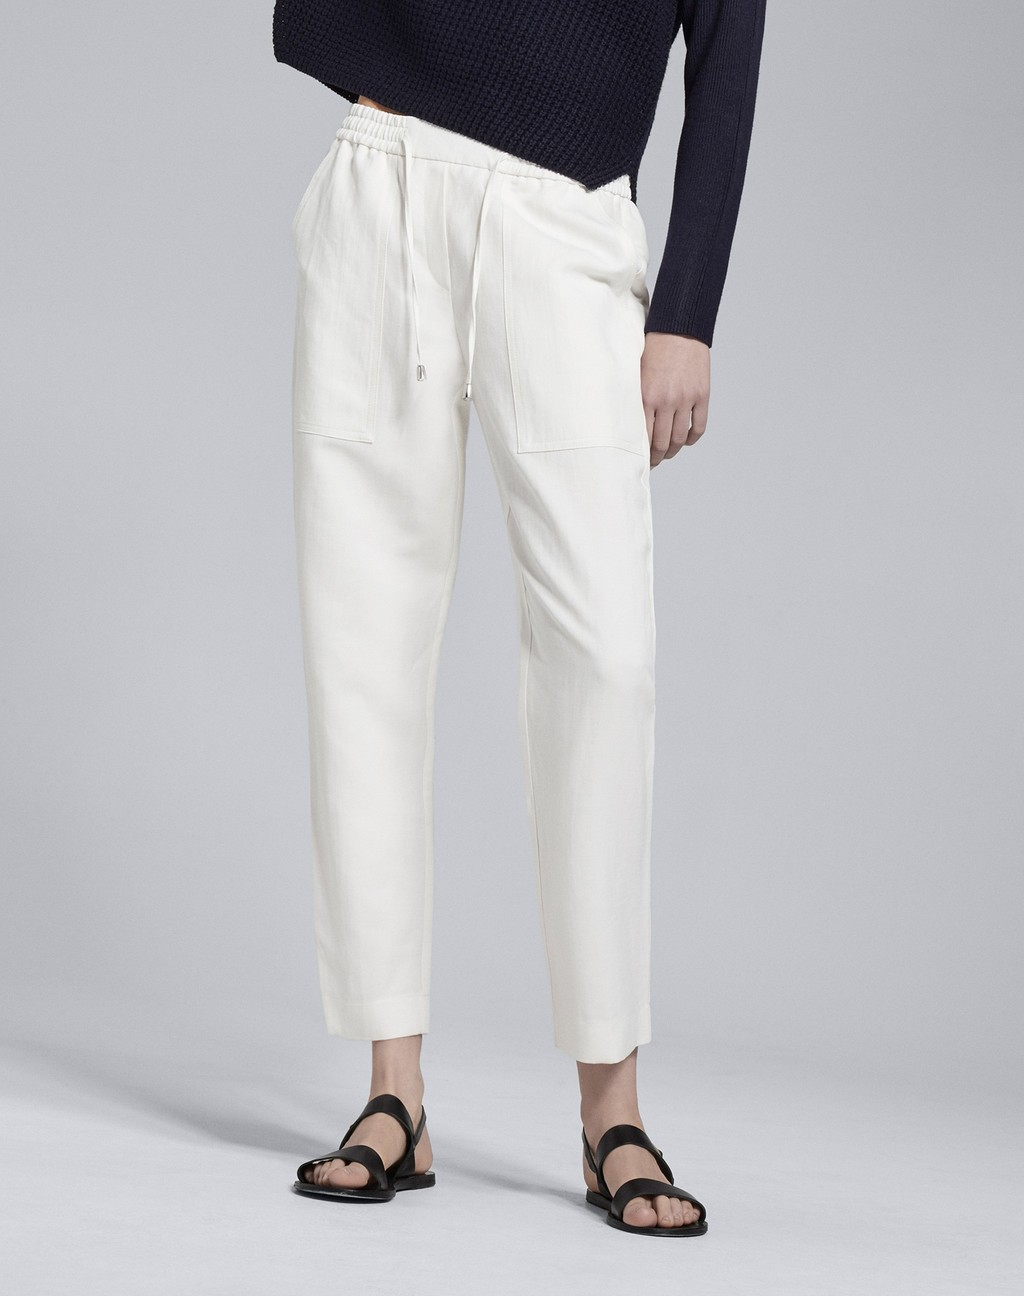 Summer Cargo Pant Soft White - length: standard; pattern: plain; style: peg leg; waist: mid/regular rise; predominant colour: white; occasions: casual, creative work; fibres: linen - mix; fit: tapered; pattern type: fabric; texture group: other - light to midweight; season: s/s 2016; wardrobe: basic